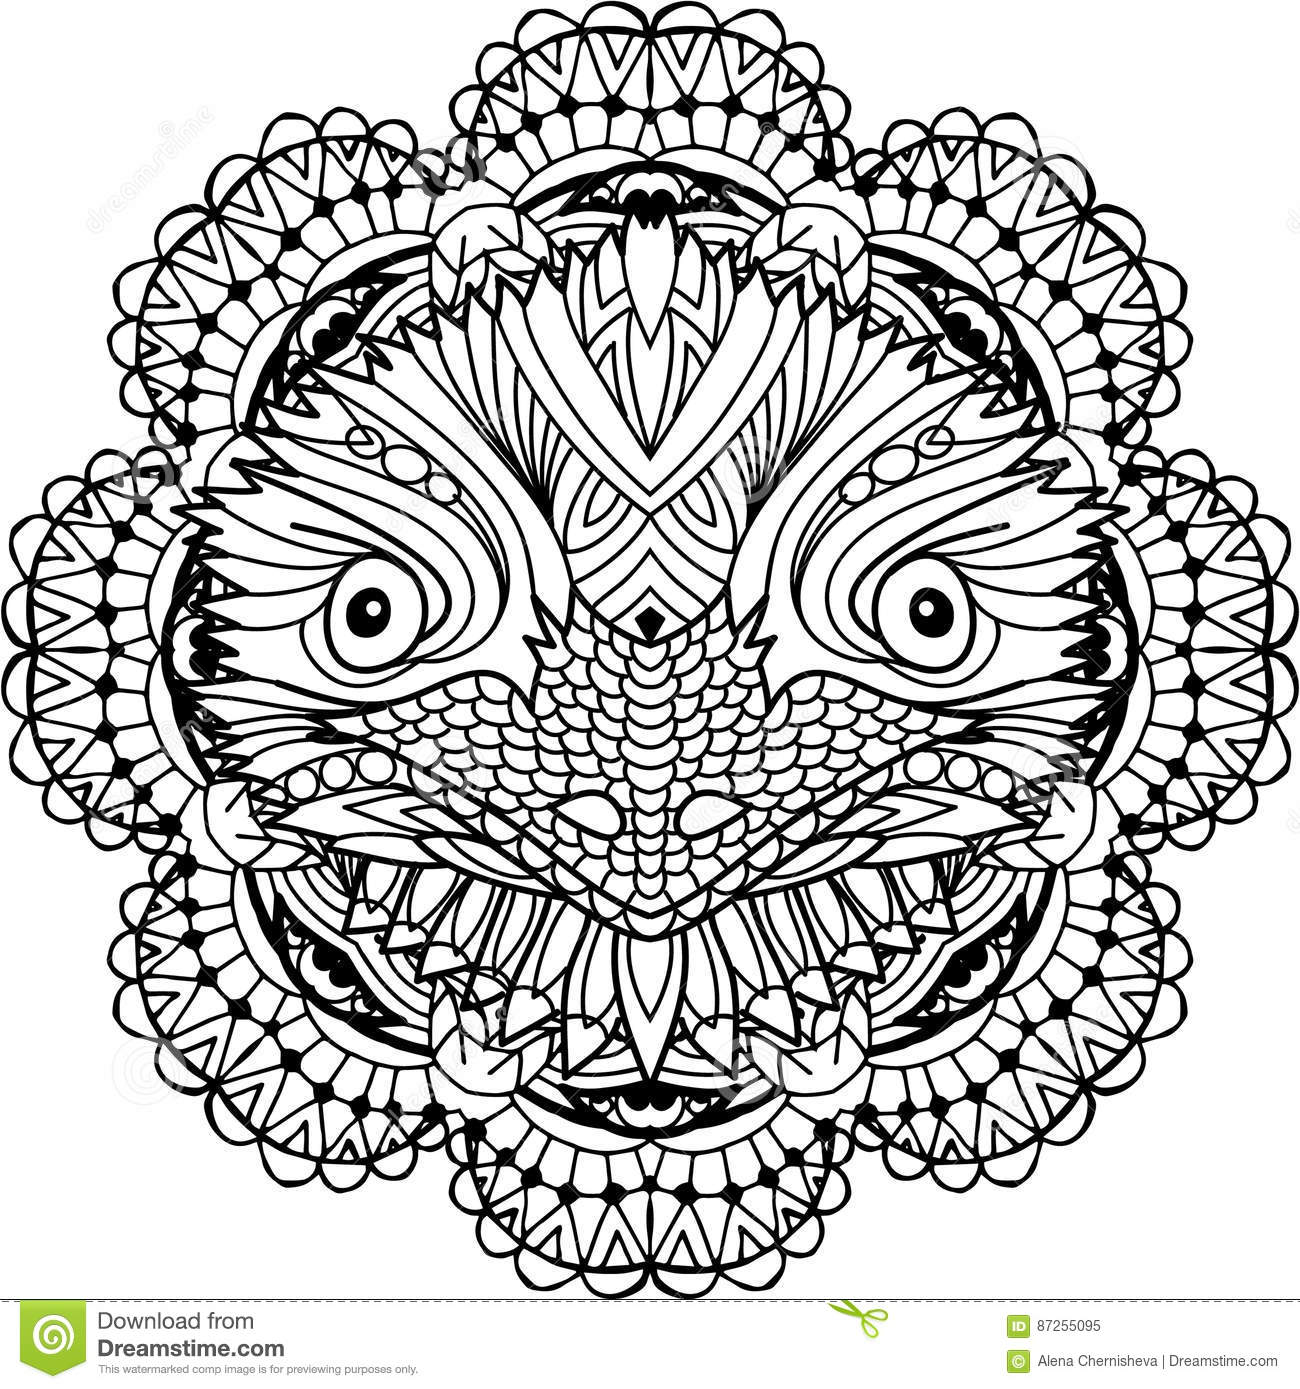 Coloring Page For Adults Australian Animal The Head Of A Emu With Patterns Monochrome Ink Line Art Tattoos And Other Designs Zenart